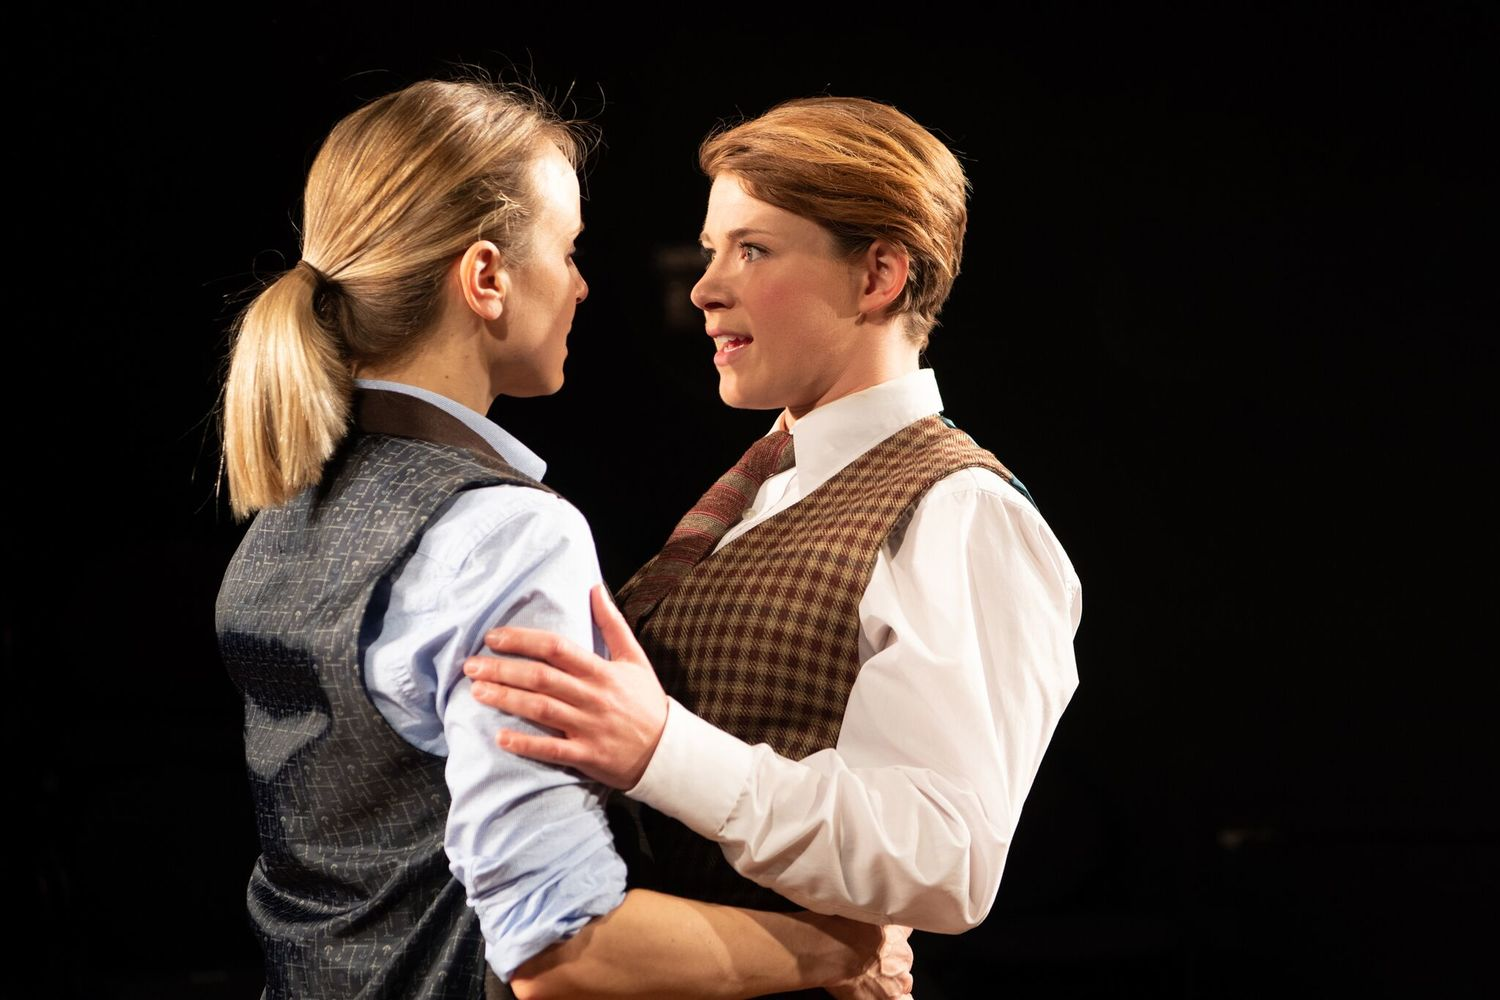 BWW REVIEW: AS YOU LIKE IT at the GAMM THEATRE is a Blue Thumbs Up